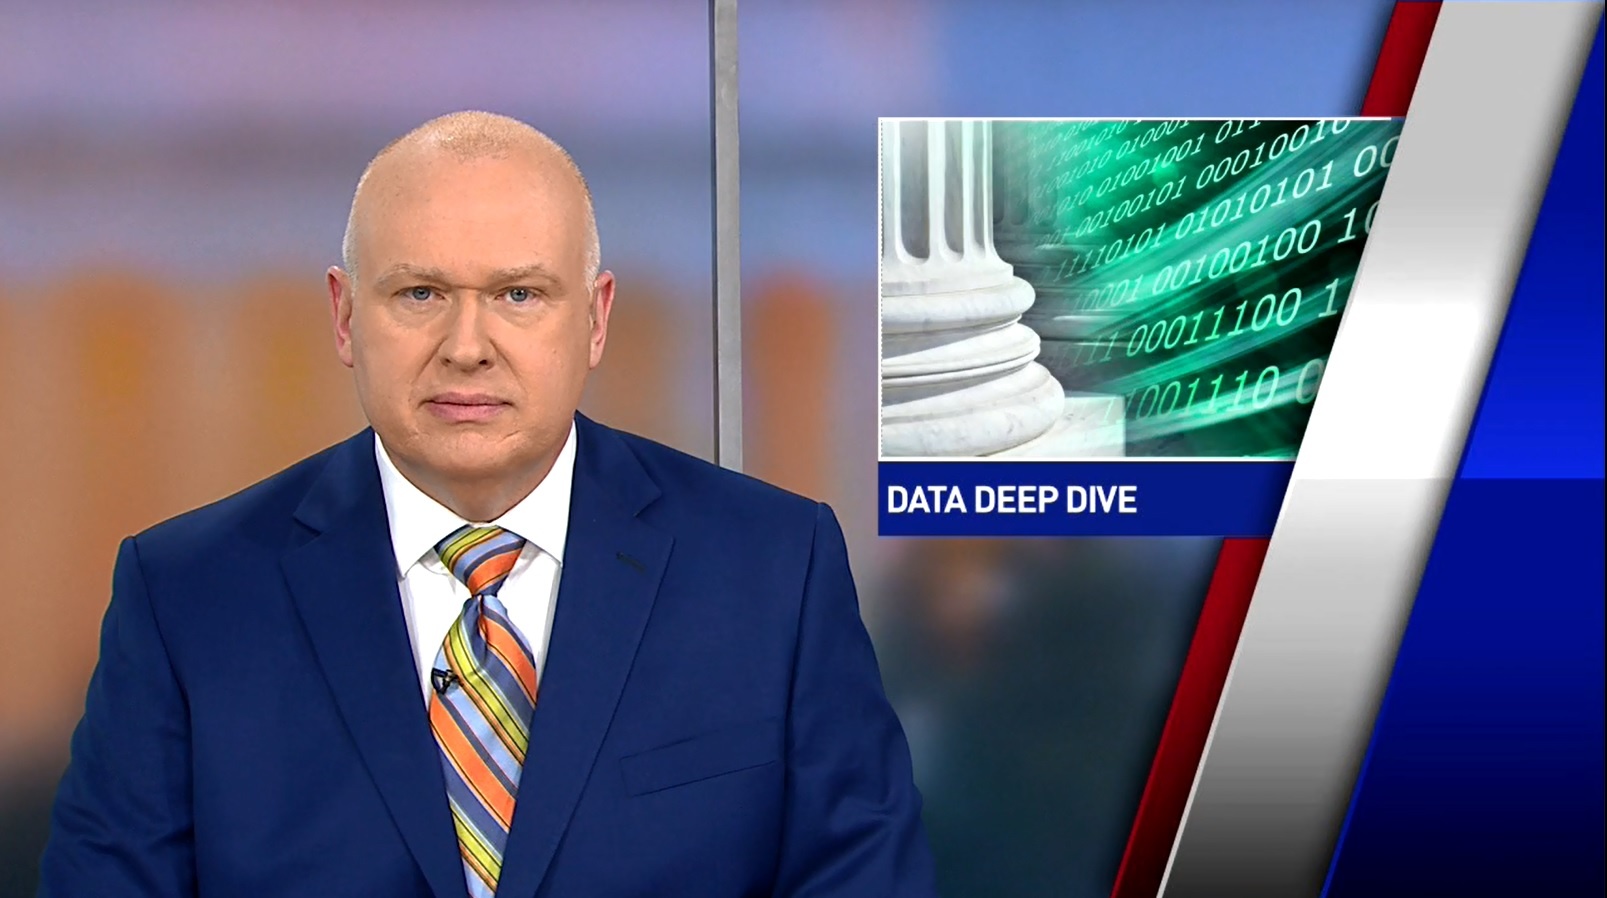 Federal IT market transitions to a data-first approach